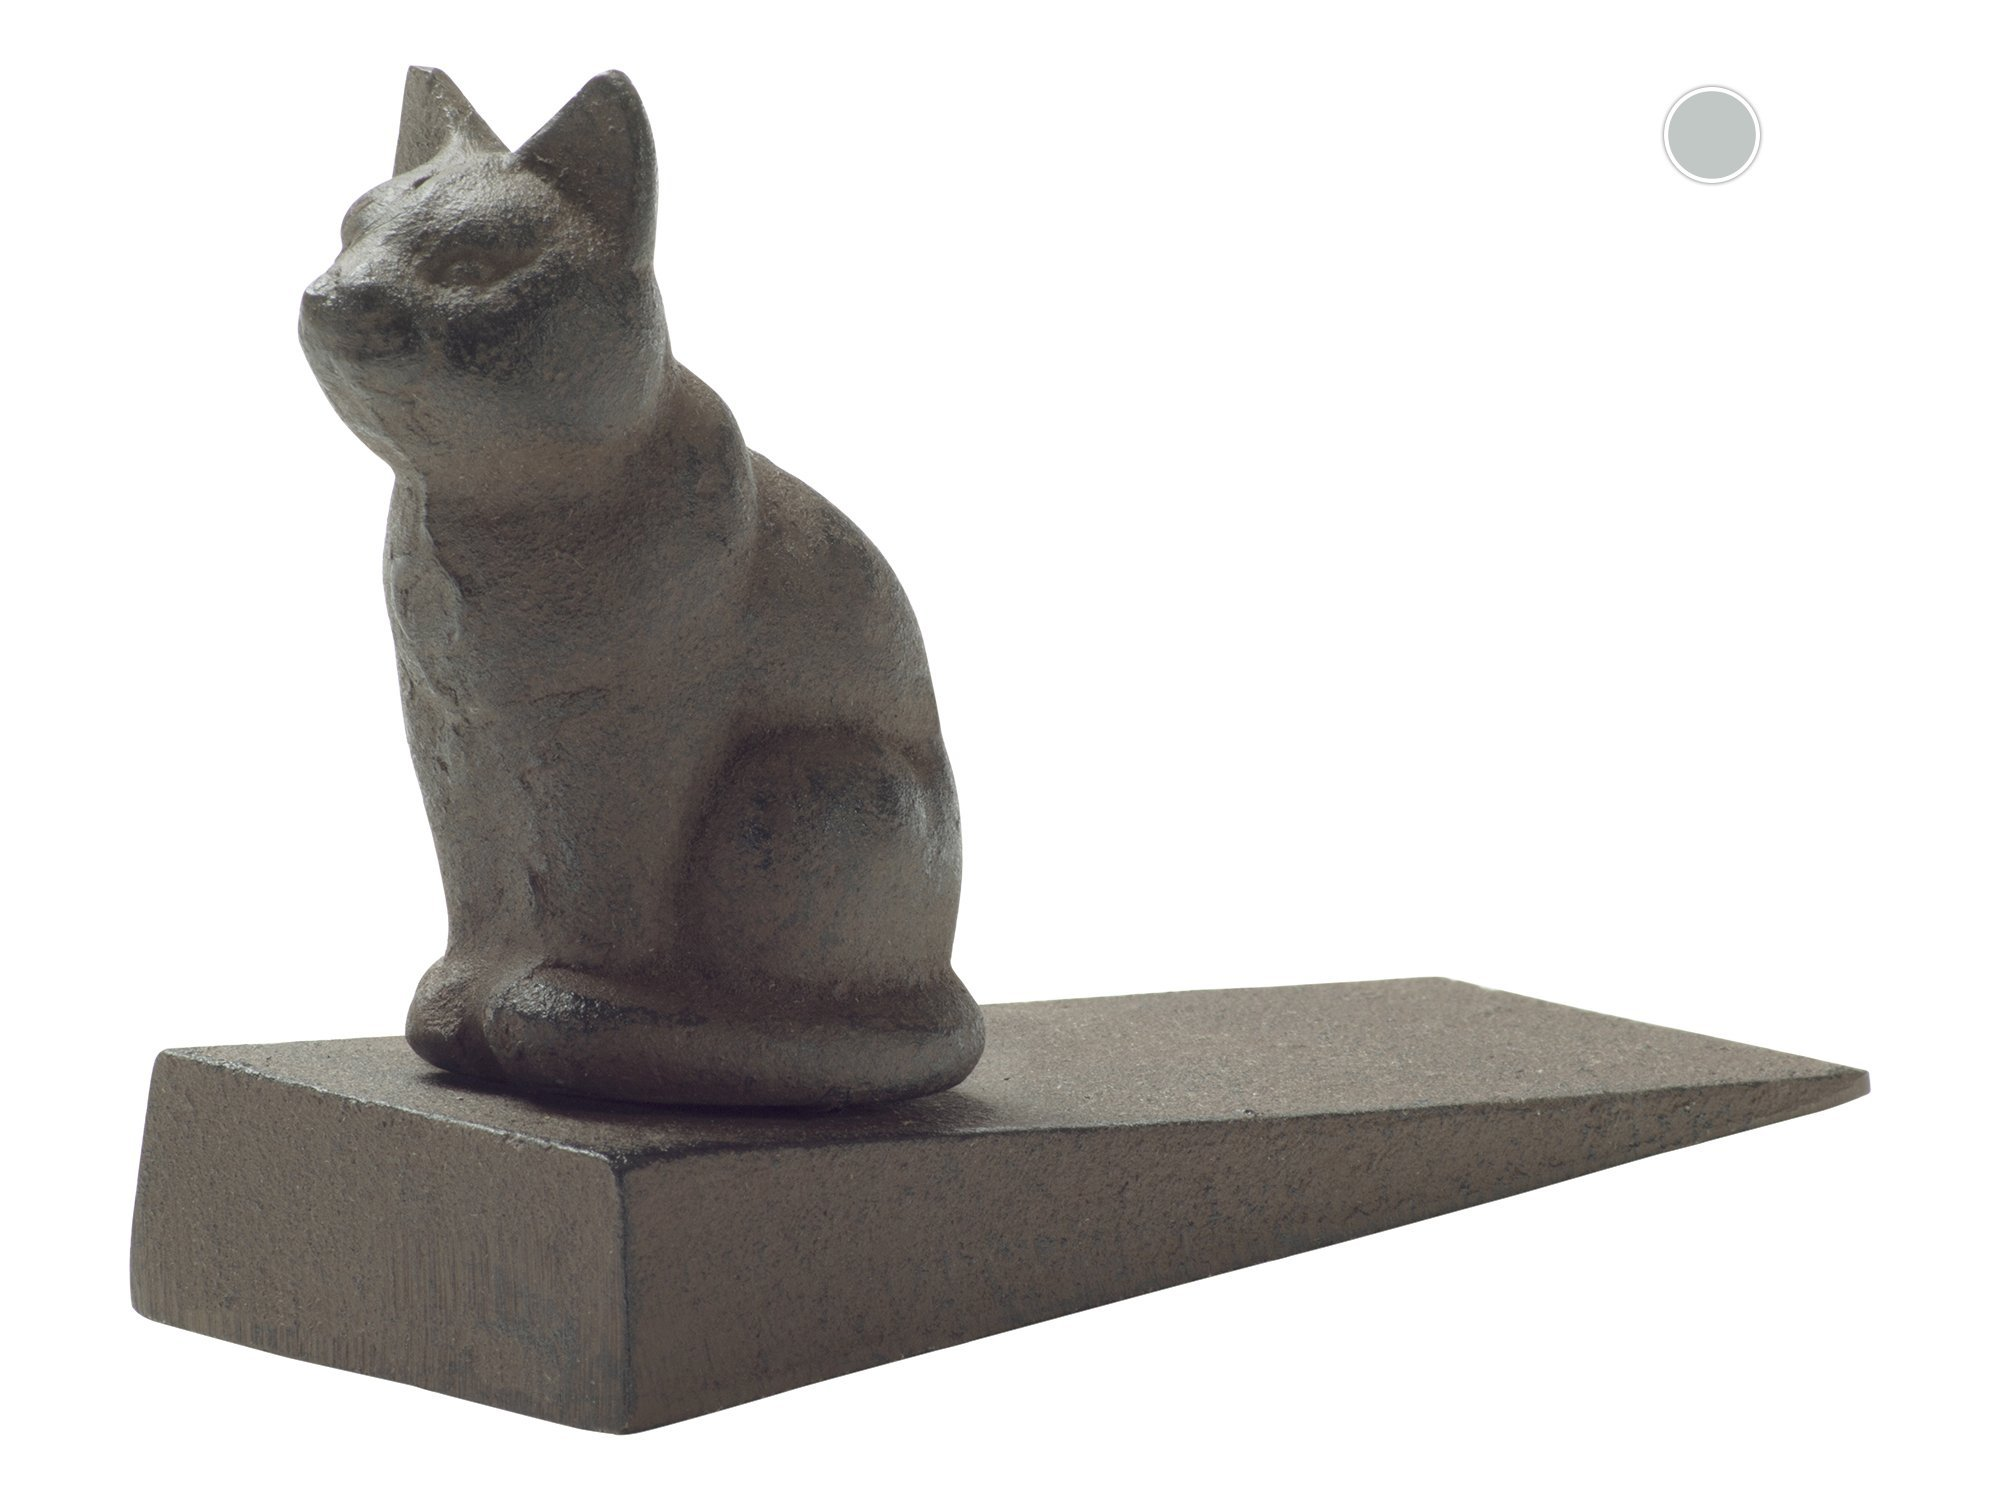 Comfify Vintage Cast Iron Cat Door Stop Wedge by Lovely Decorative Finish, Padded Anti-Scratch Felt Bottom Protects Floors   in Rust Brown (Cat Door Stop CA-1507-12)